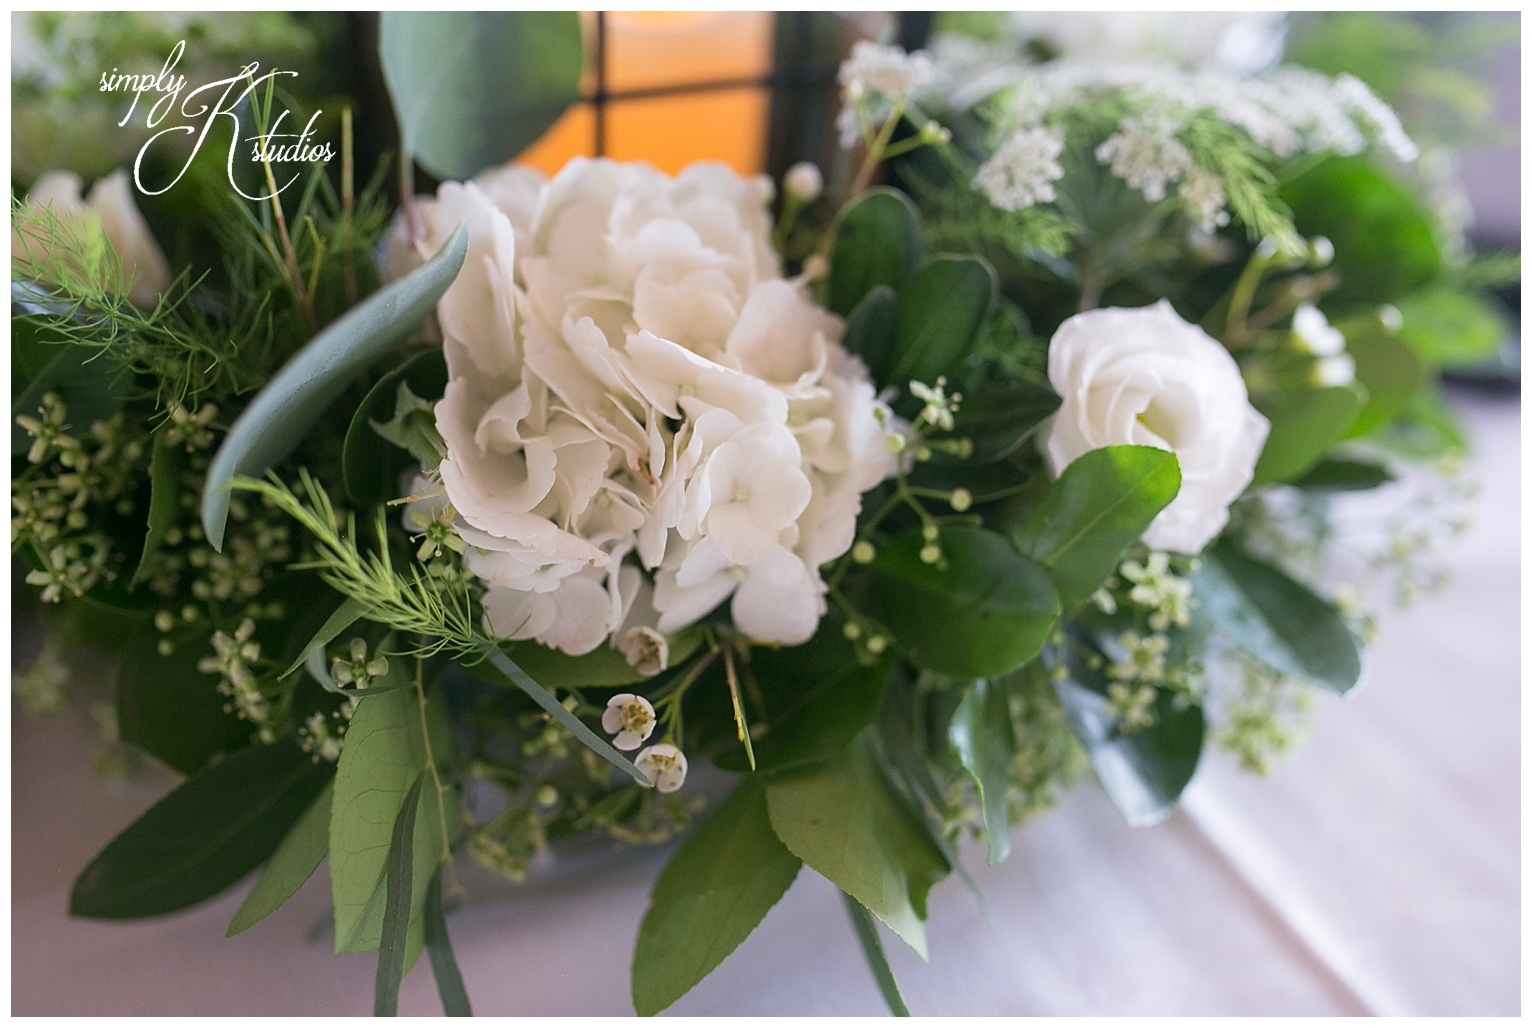 Flowers by Just For You Floral Design.jpg